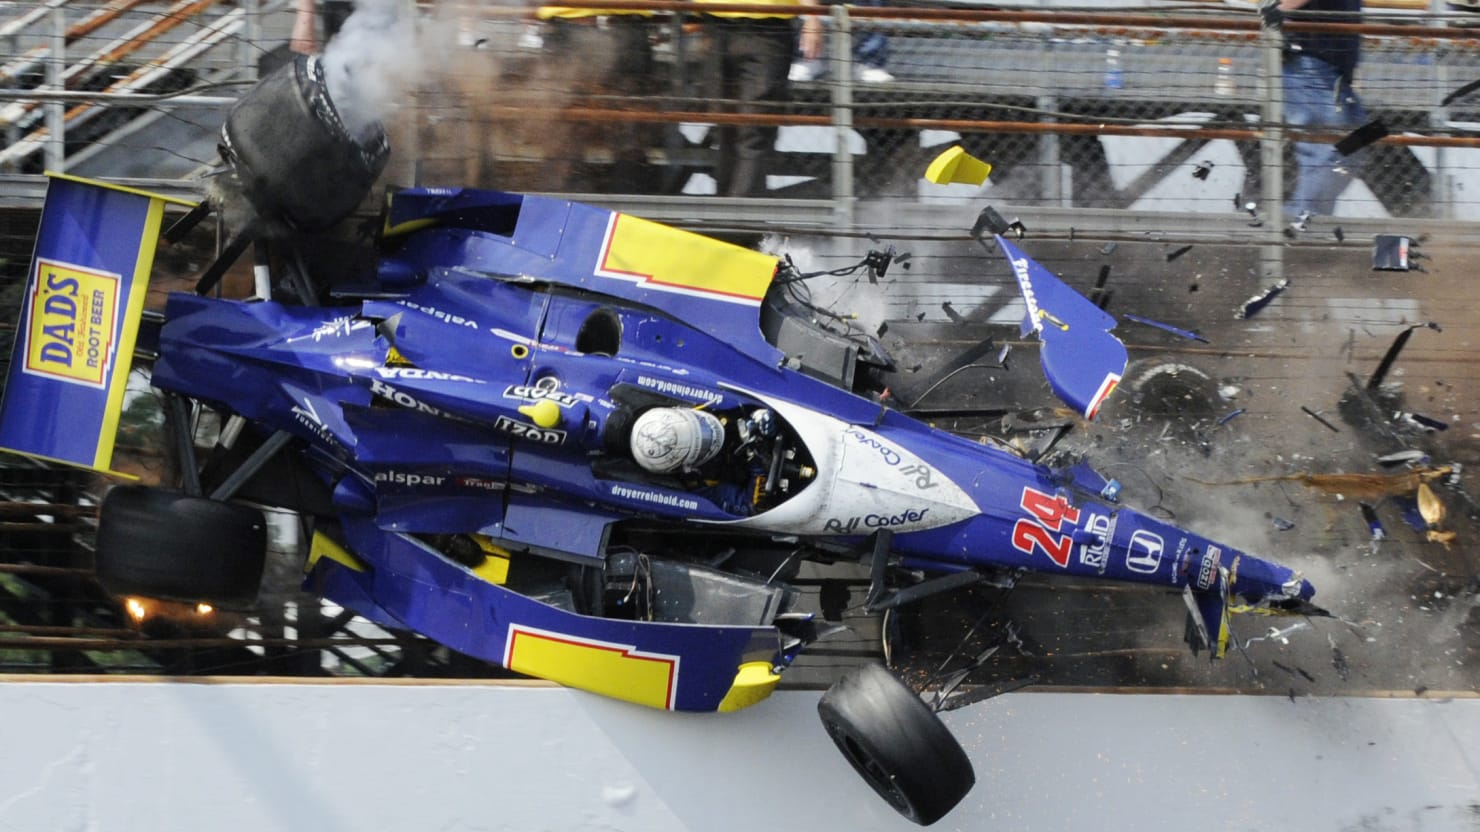 The Most Spectacular, Death-Defying Crashed in Indy 500 History